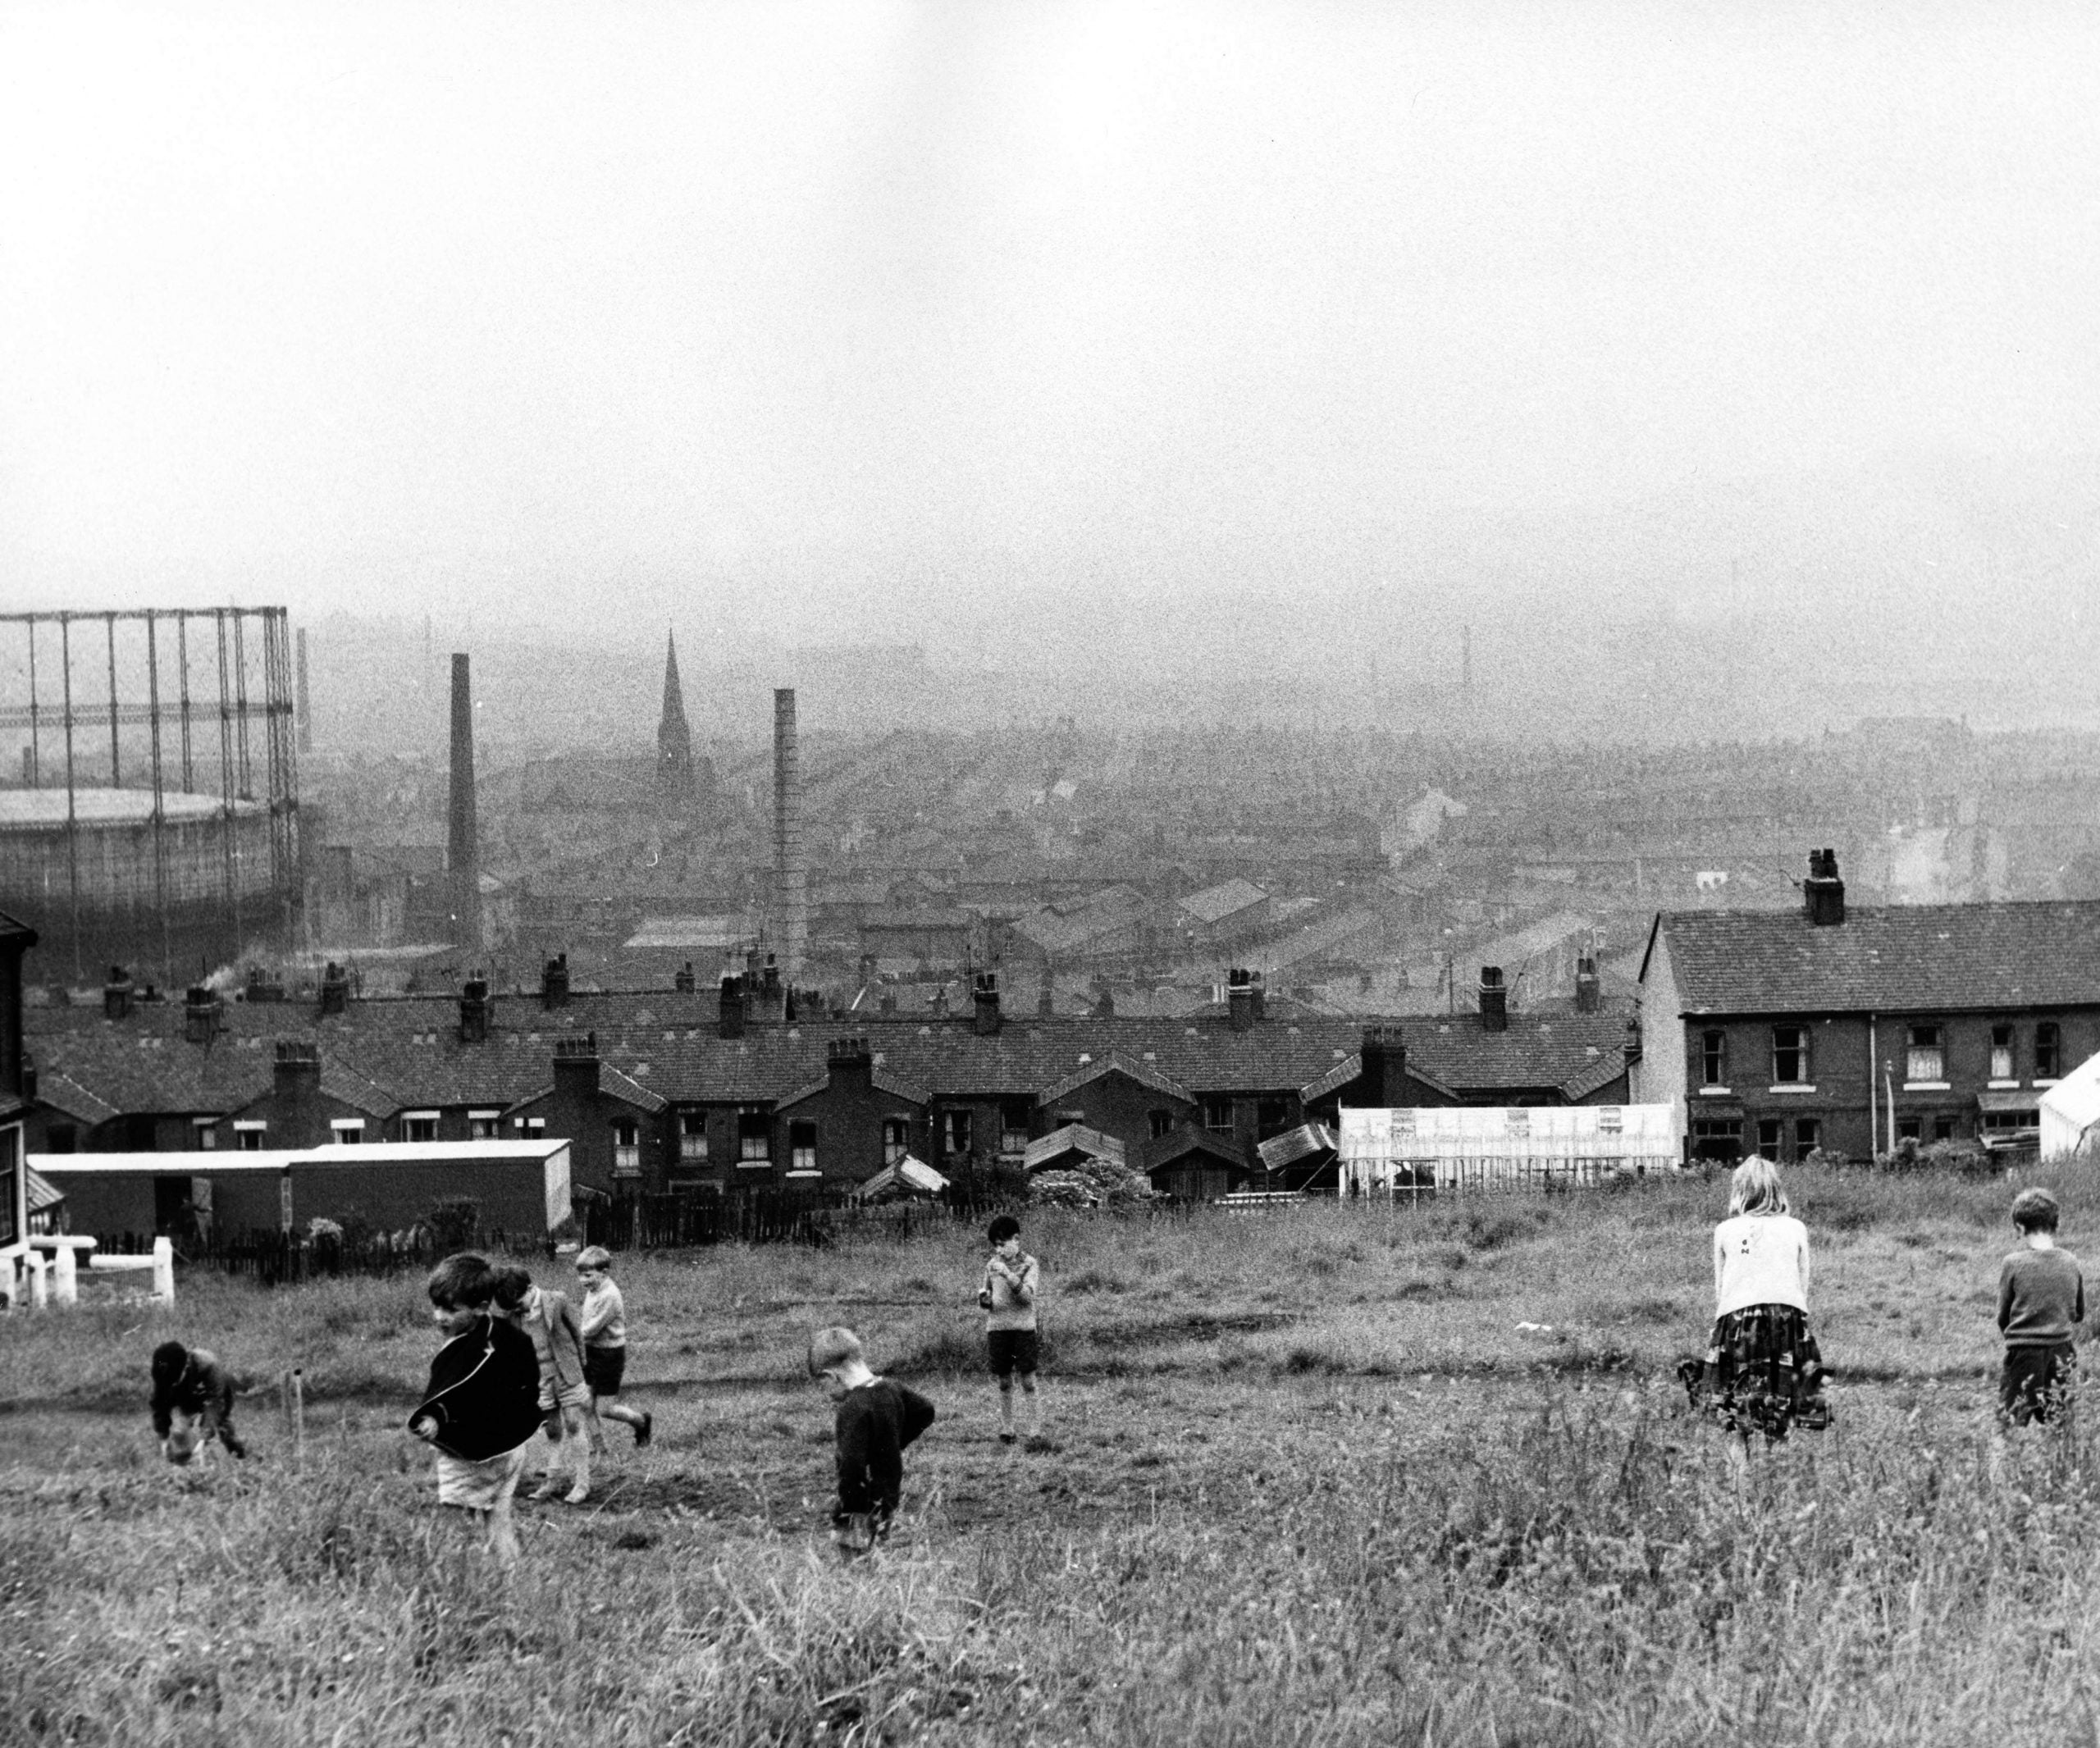 Blackburn: the town that stopped working